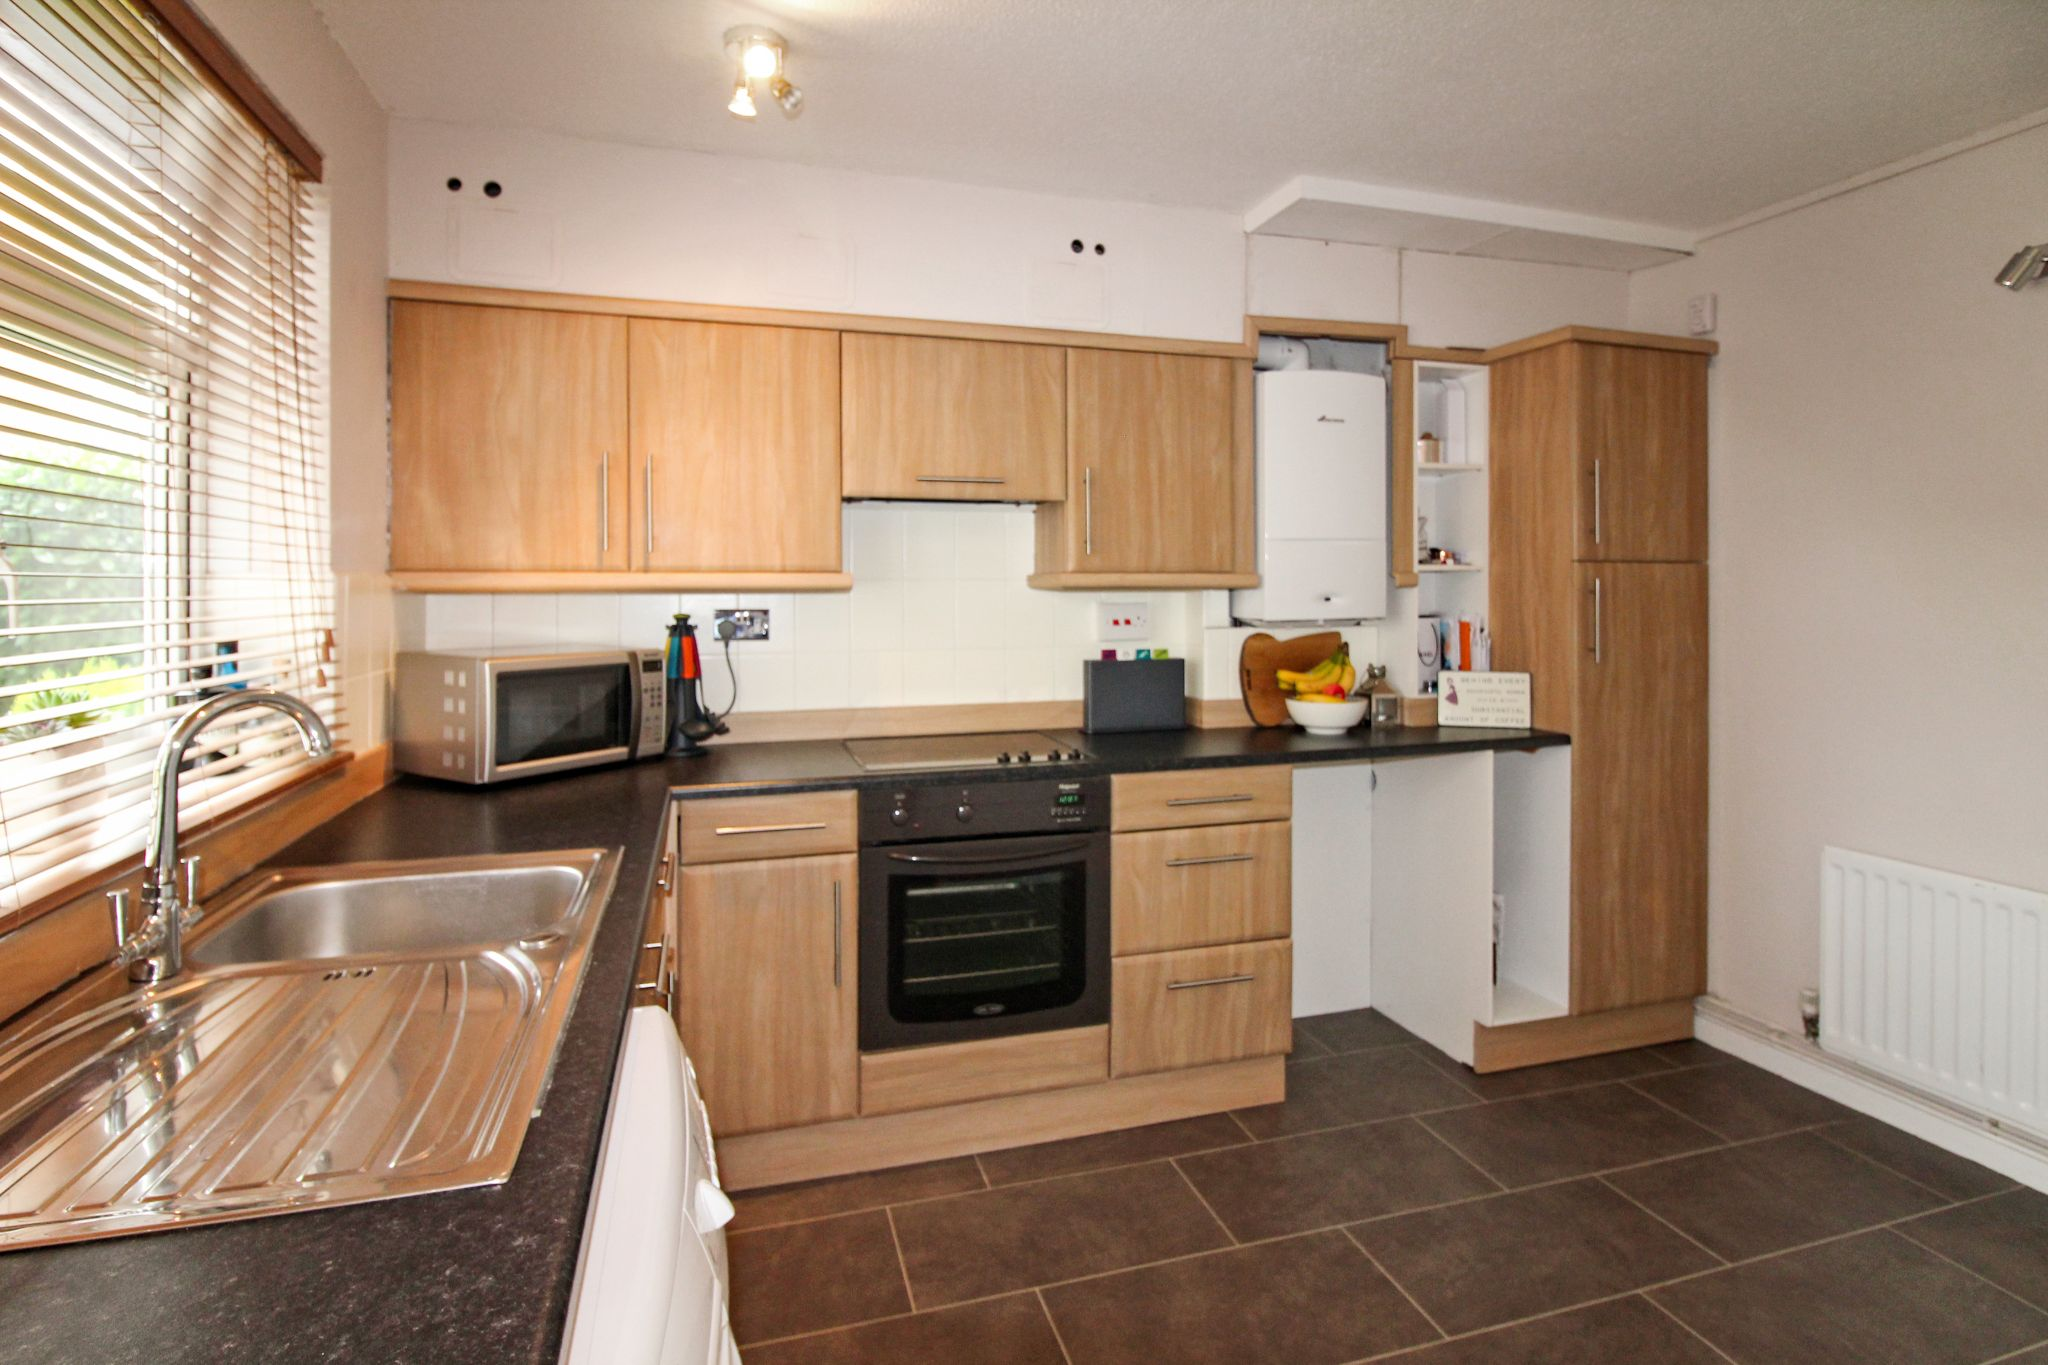 2 bedroom ground floor flat/apartment For Sale in Solihull - Photograph 4.